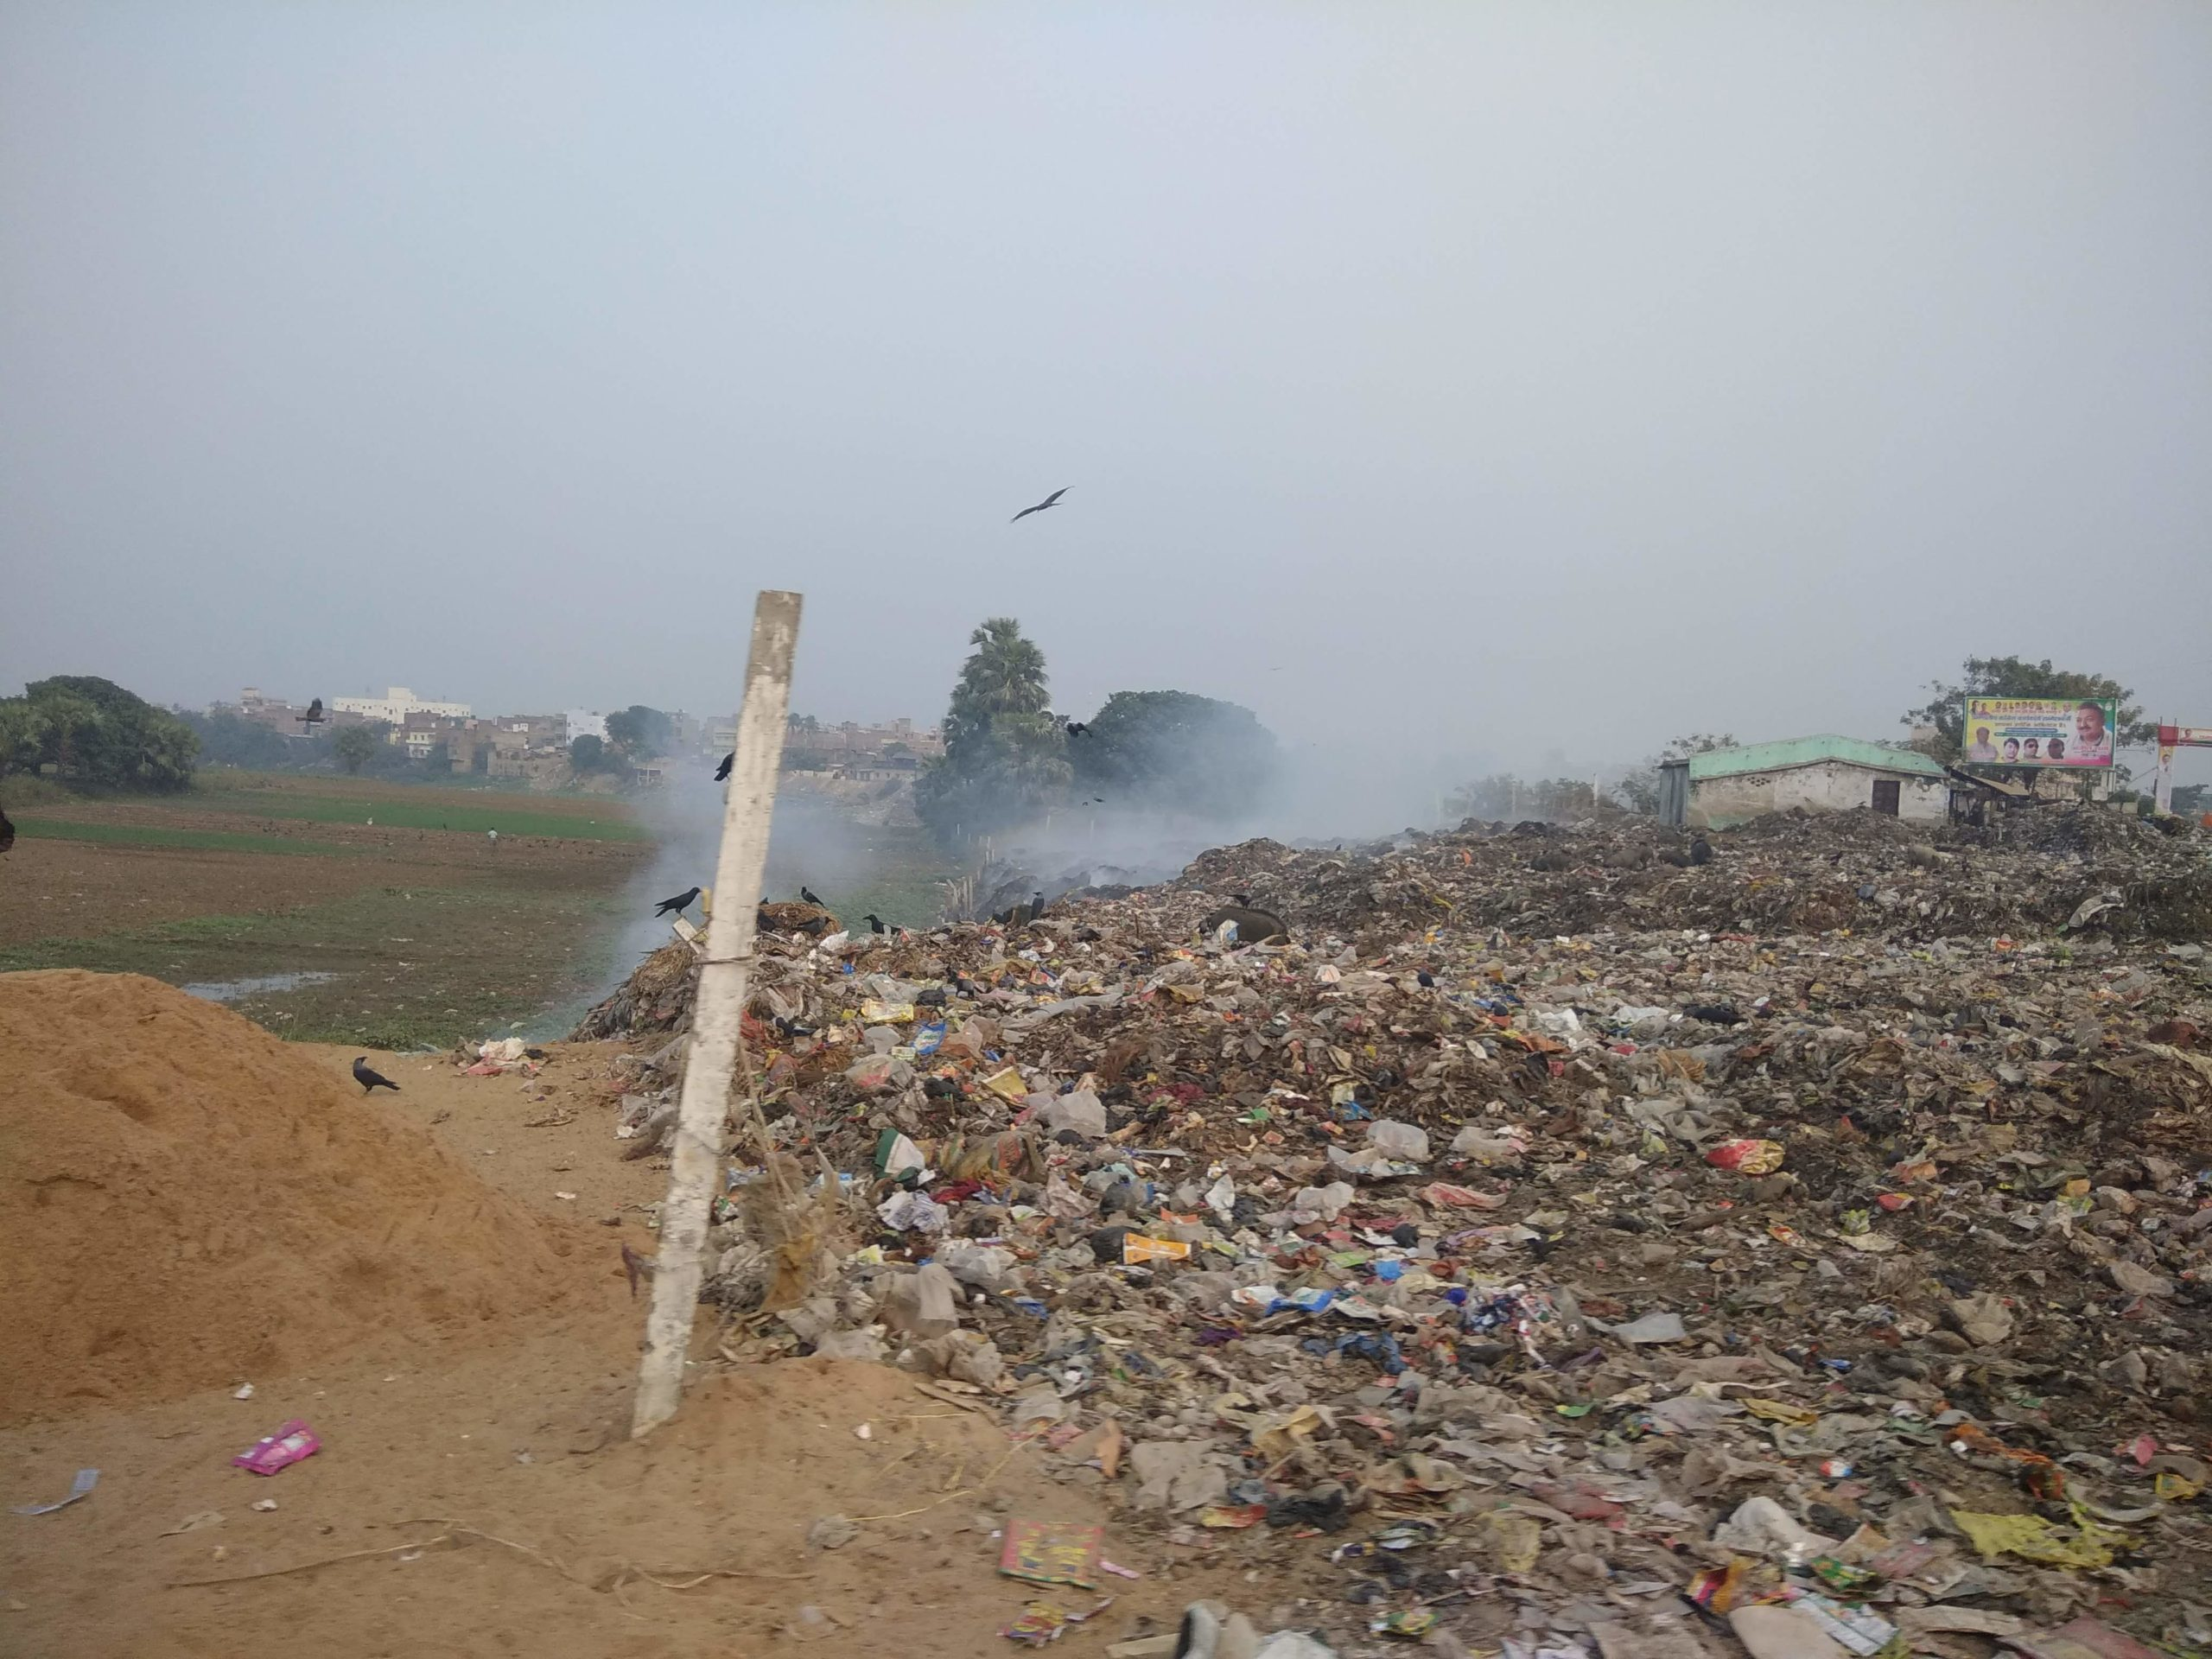 Burning of waste in the open is very common in the state. Photo by Rohin Kumar.